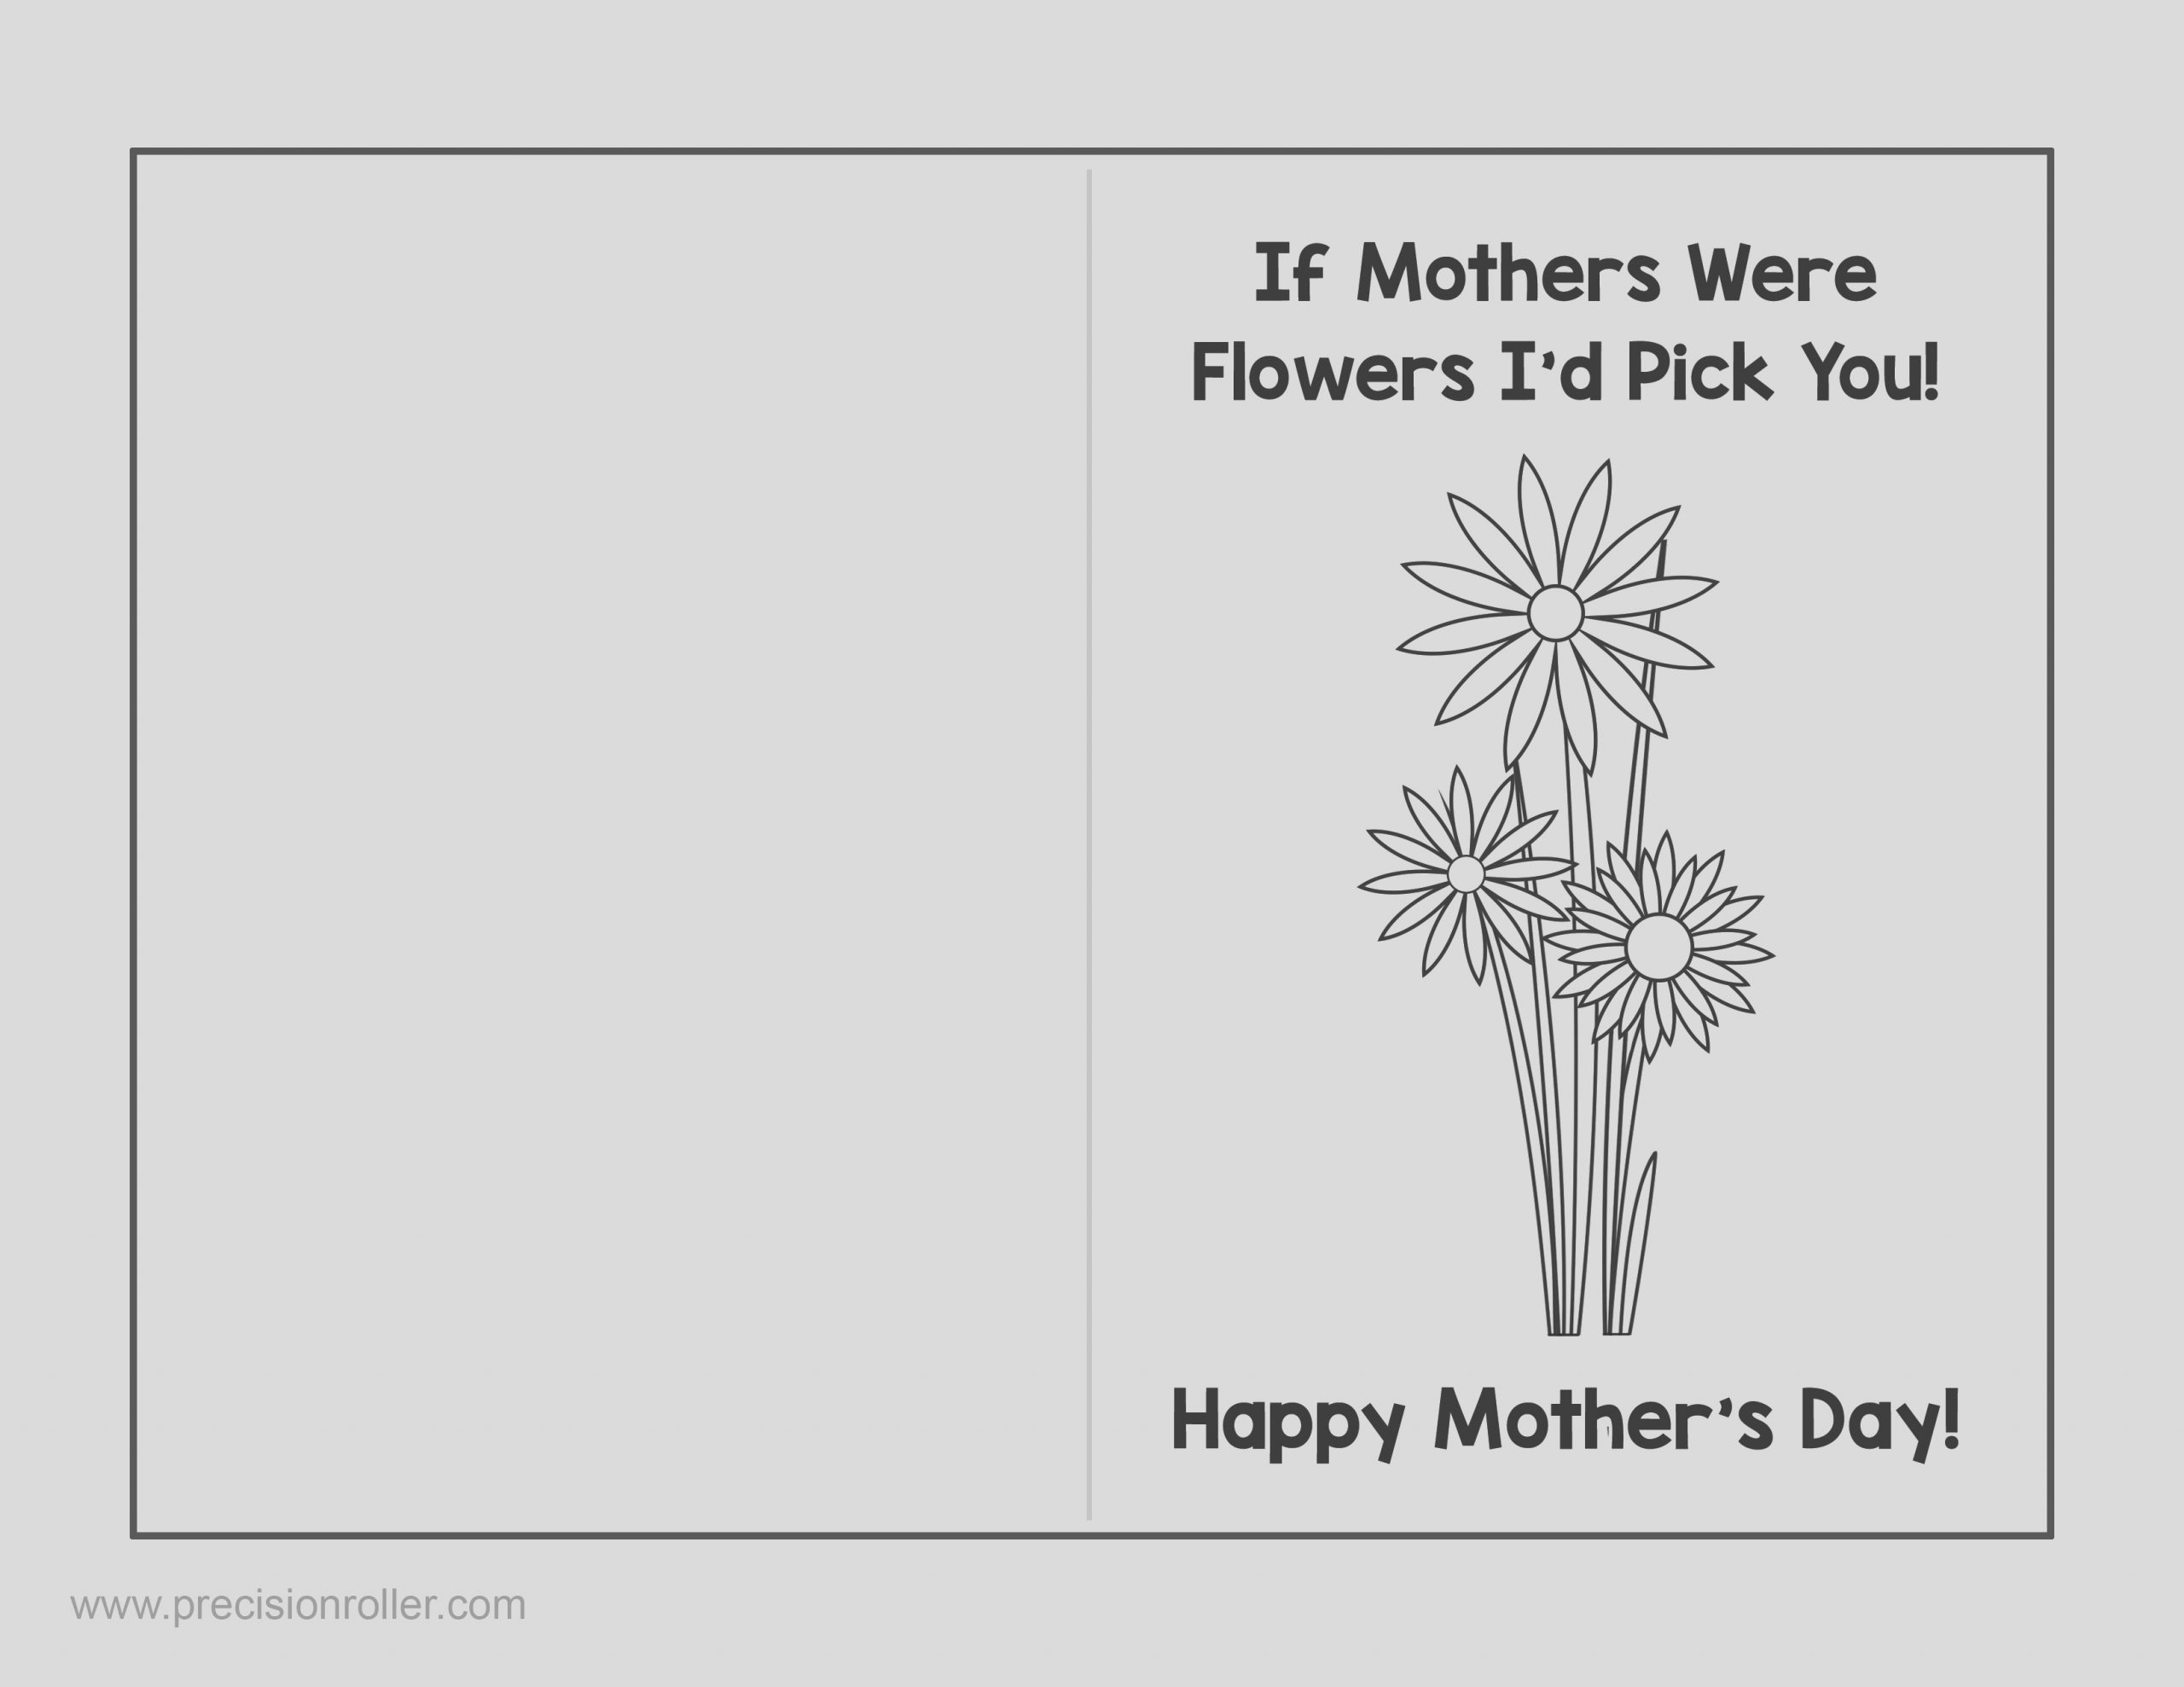 mothers day card and survey